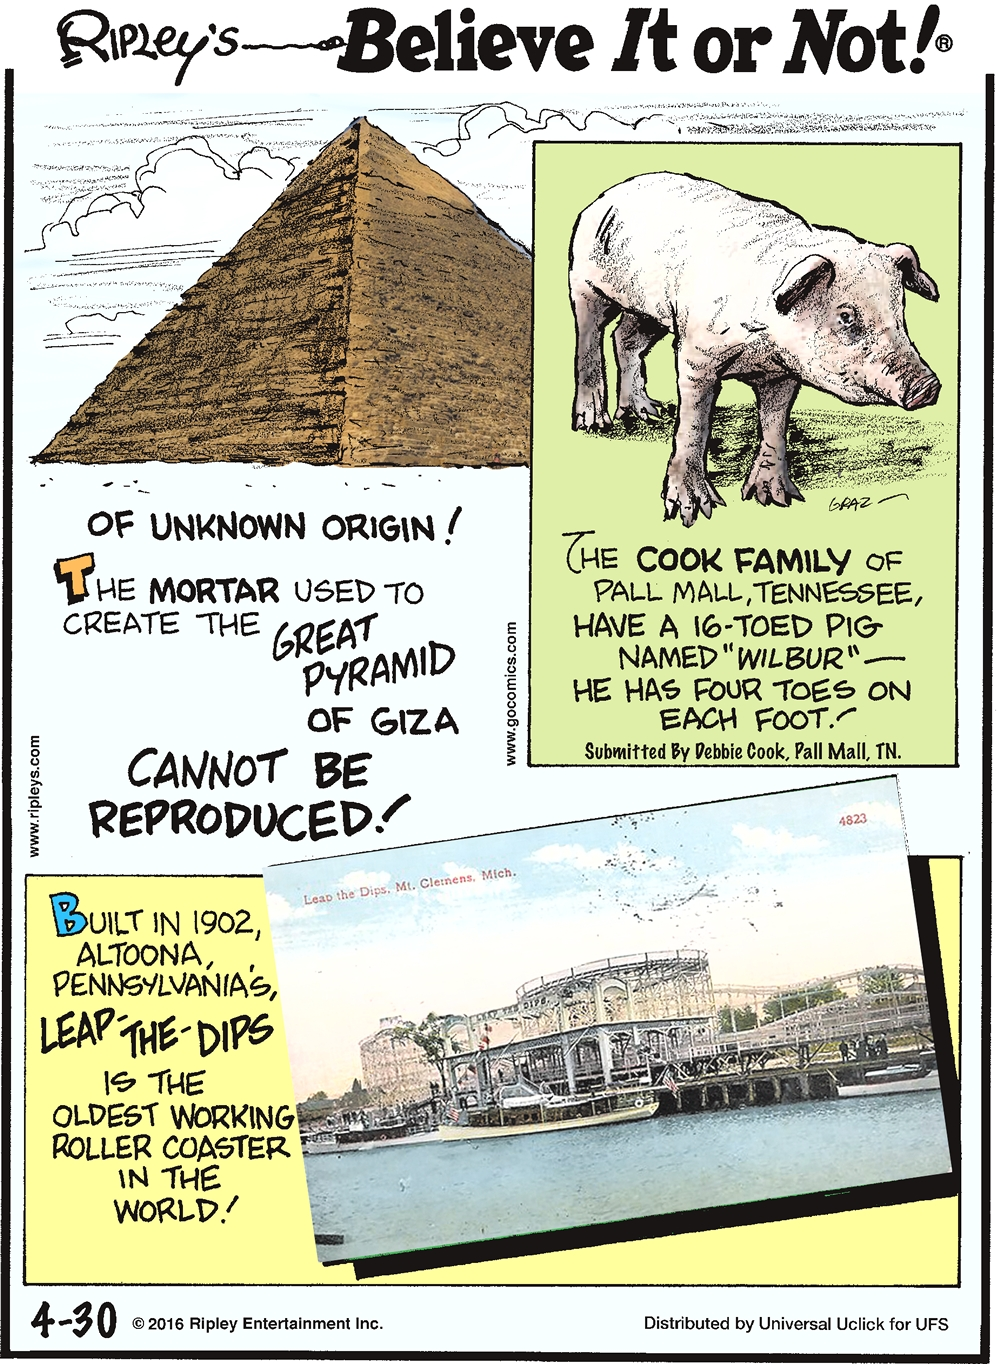 "Of unknown origin! The mortar used to create the Great Pyramid of Giza cannot be produced! -------------------- The cook family of Tennessee, have a 16-toed pig named ""Wilbur""—he has four toed on each foot! Submitted by Debbie Cook, Pall Mall, TN. -------------------- Built in 1902, Altoona, Pennsylvania's, Leap-the-Dips is the oldest working roller coaster in the world!"